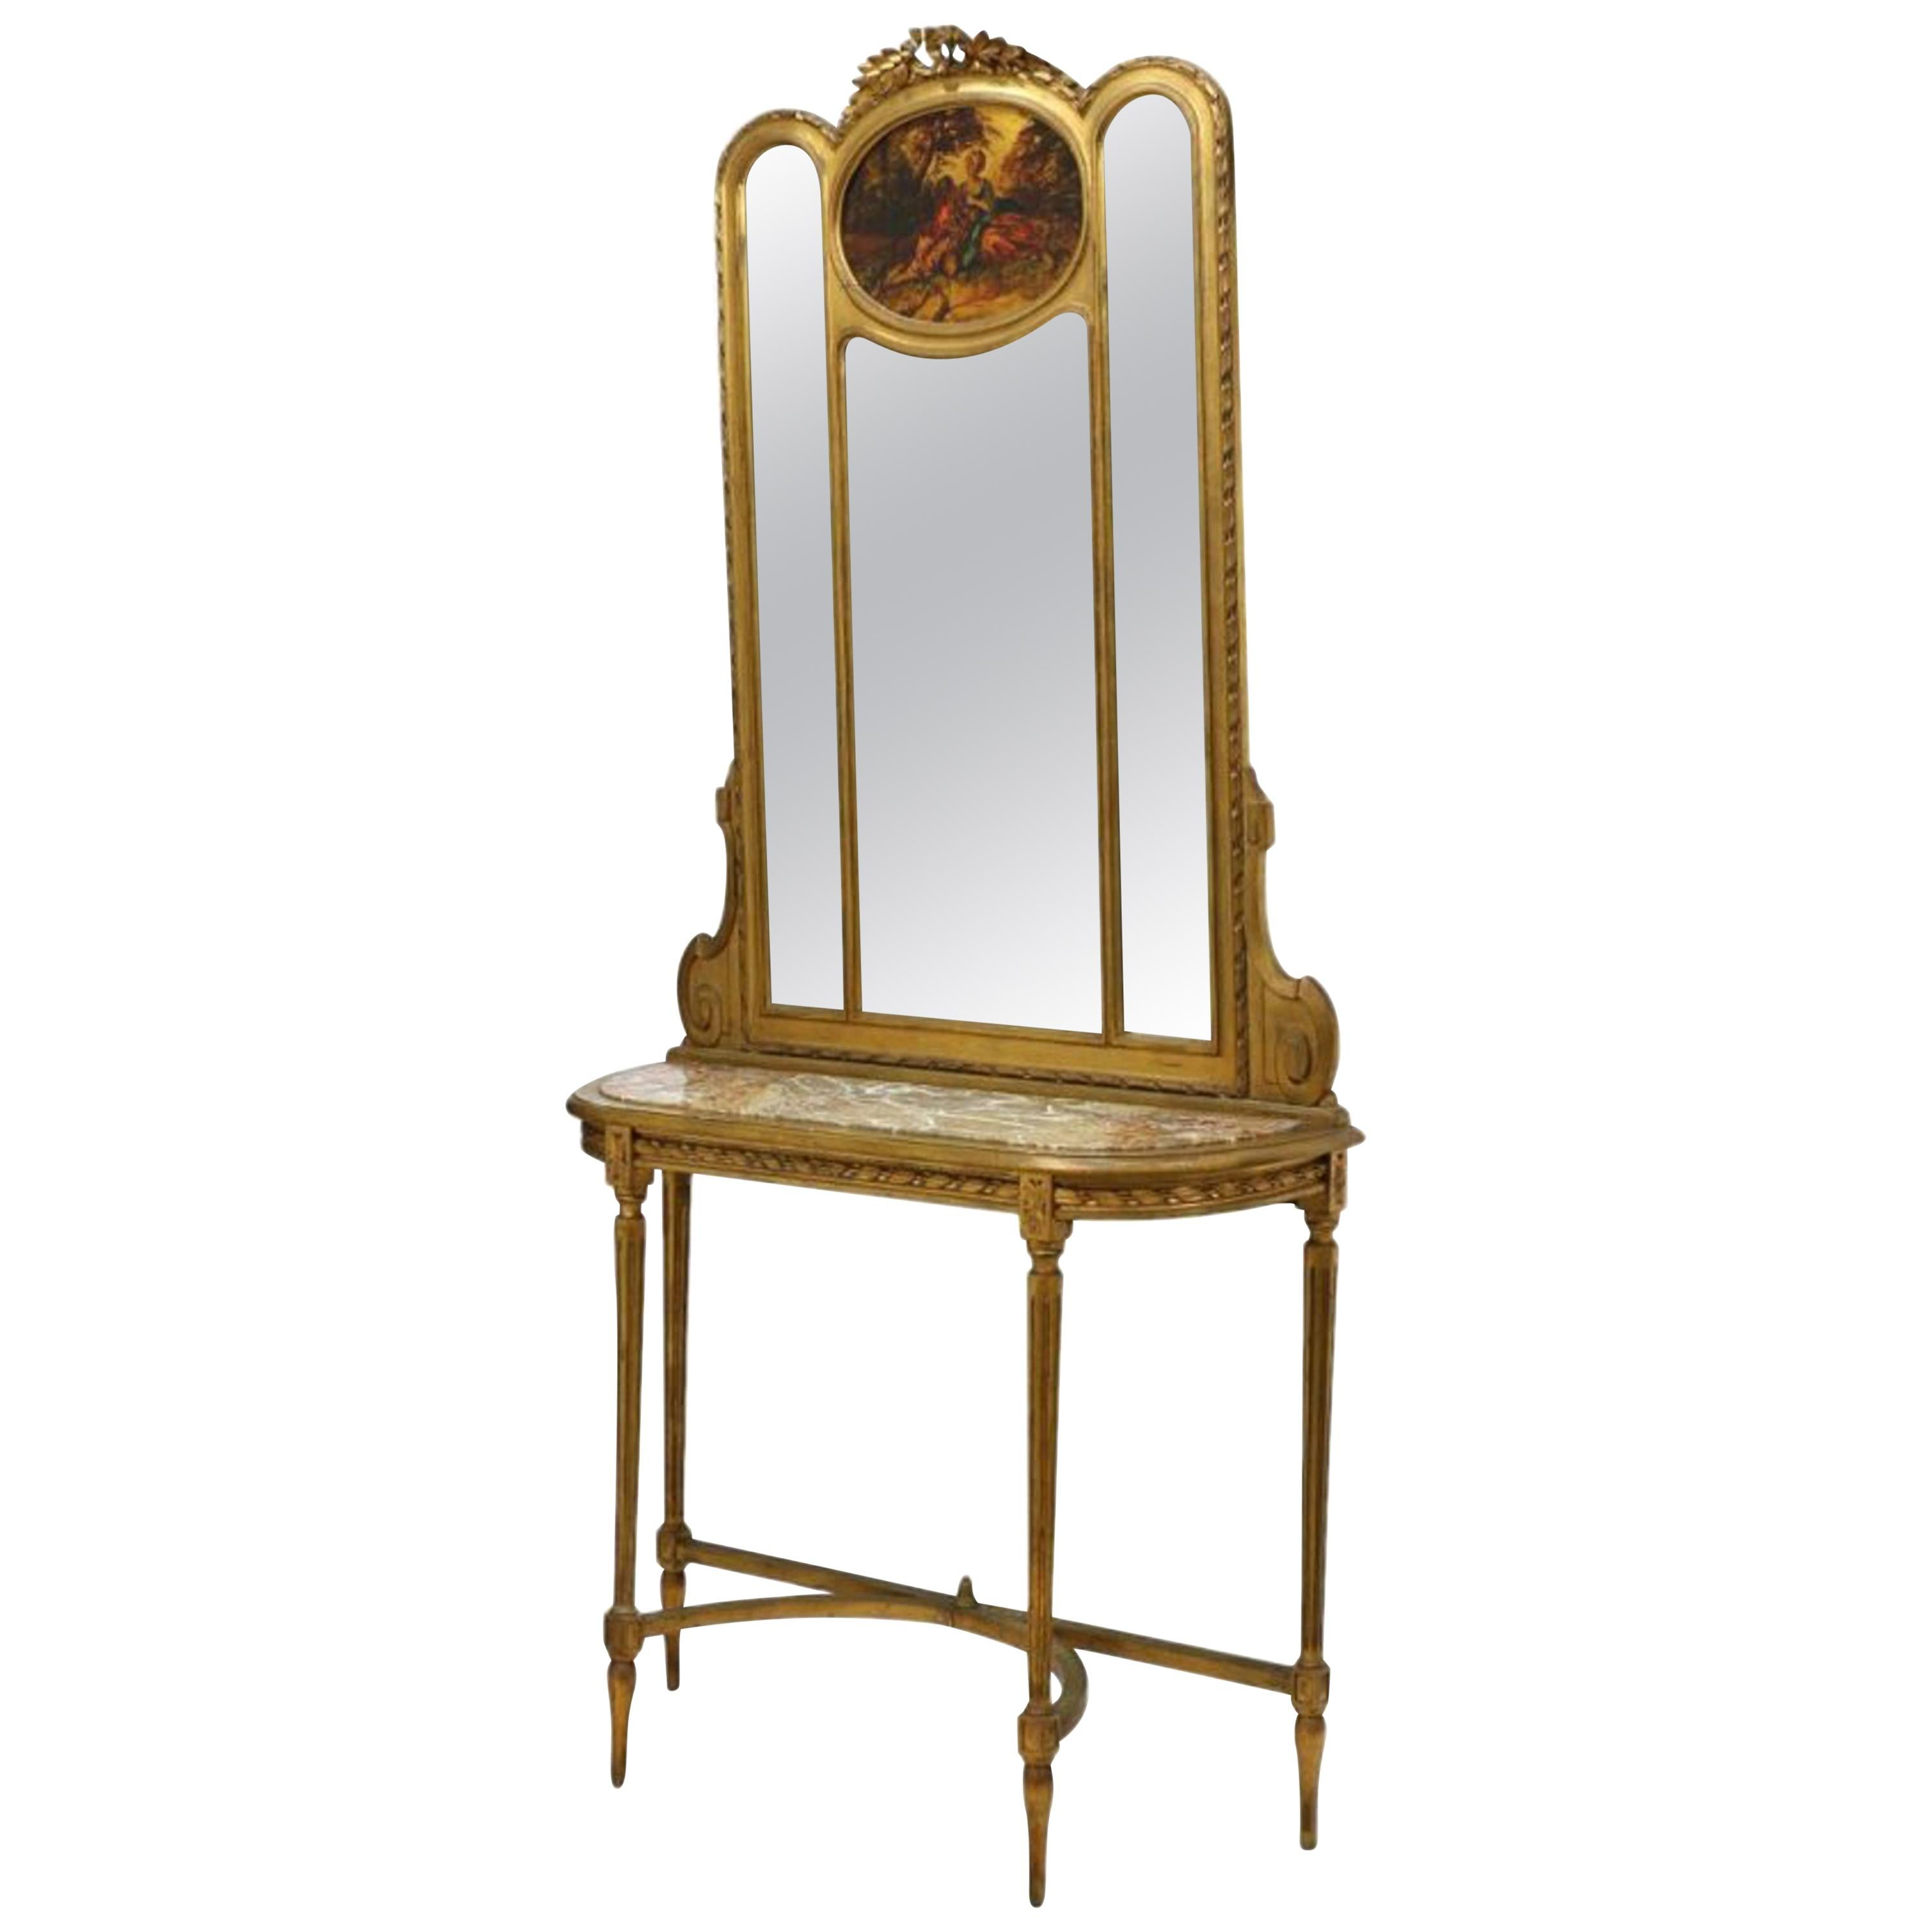 French Vernis Martin Style Giltwood Mirror and Console, 19th Century